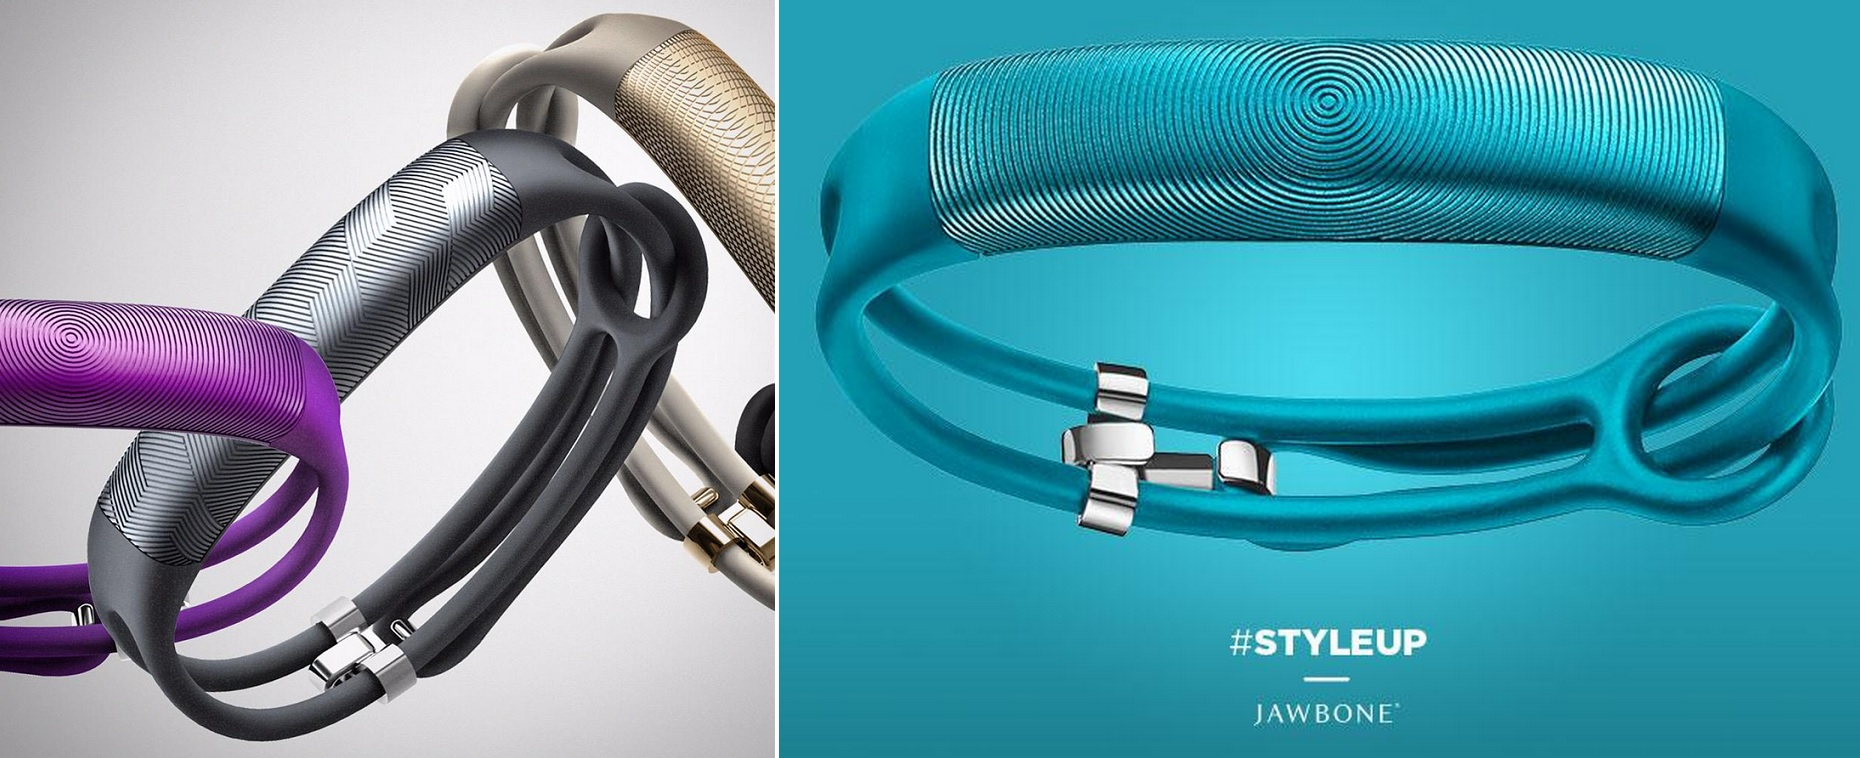 Jawbone UP2 fitness